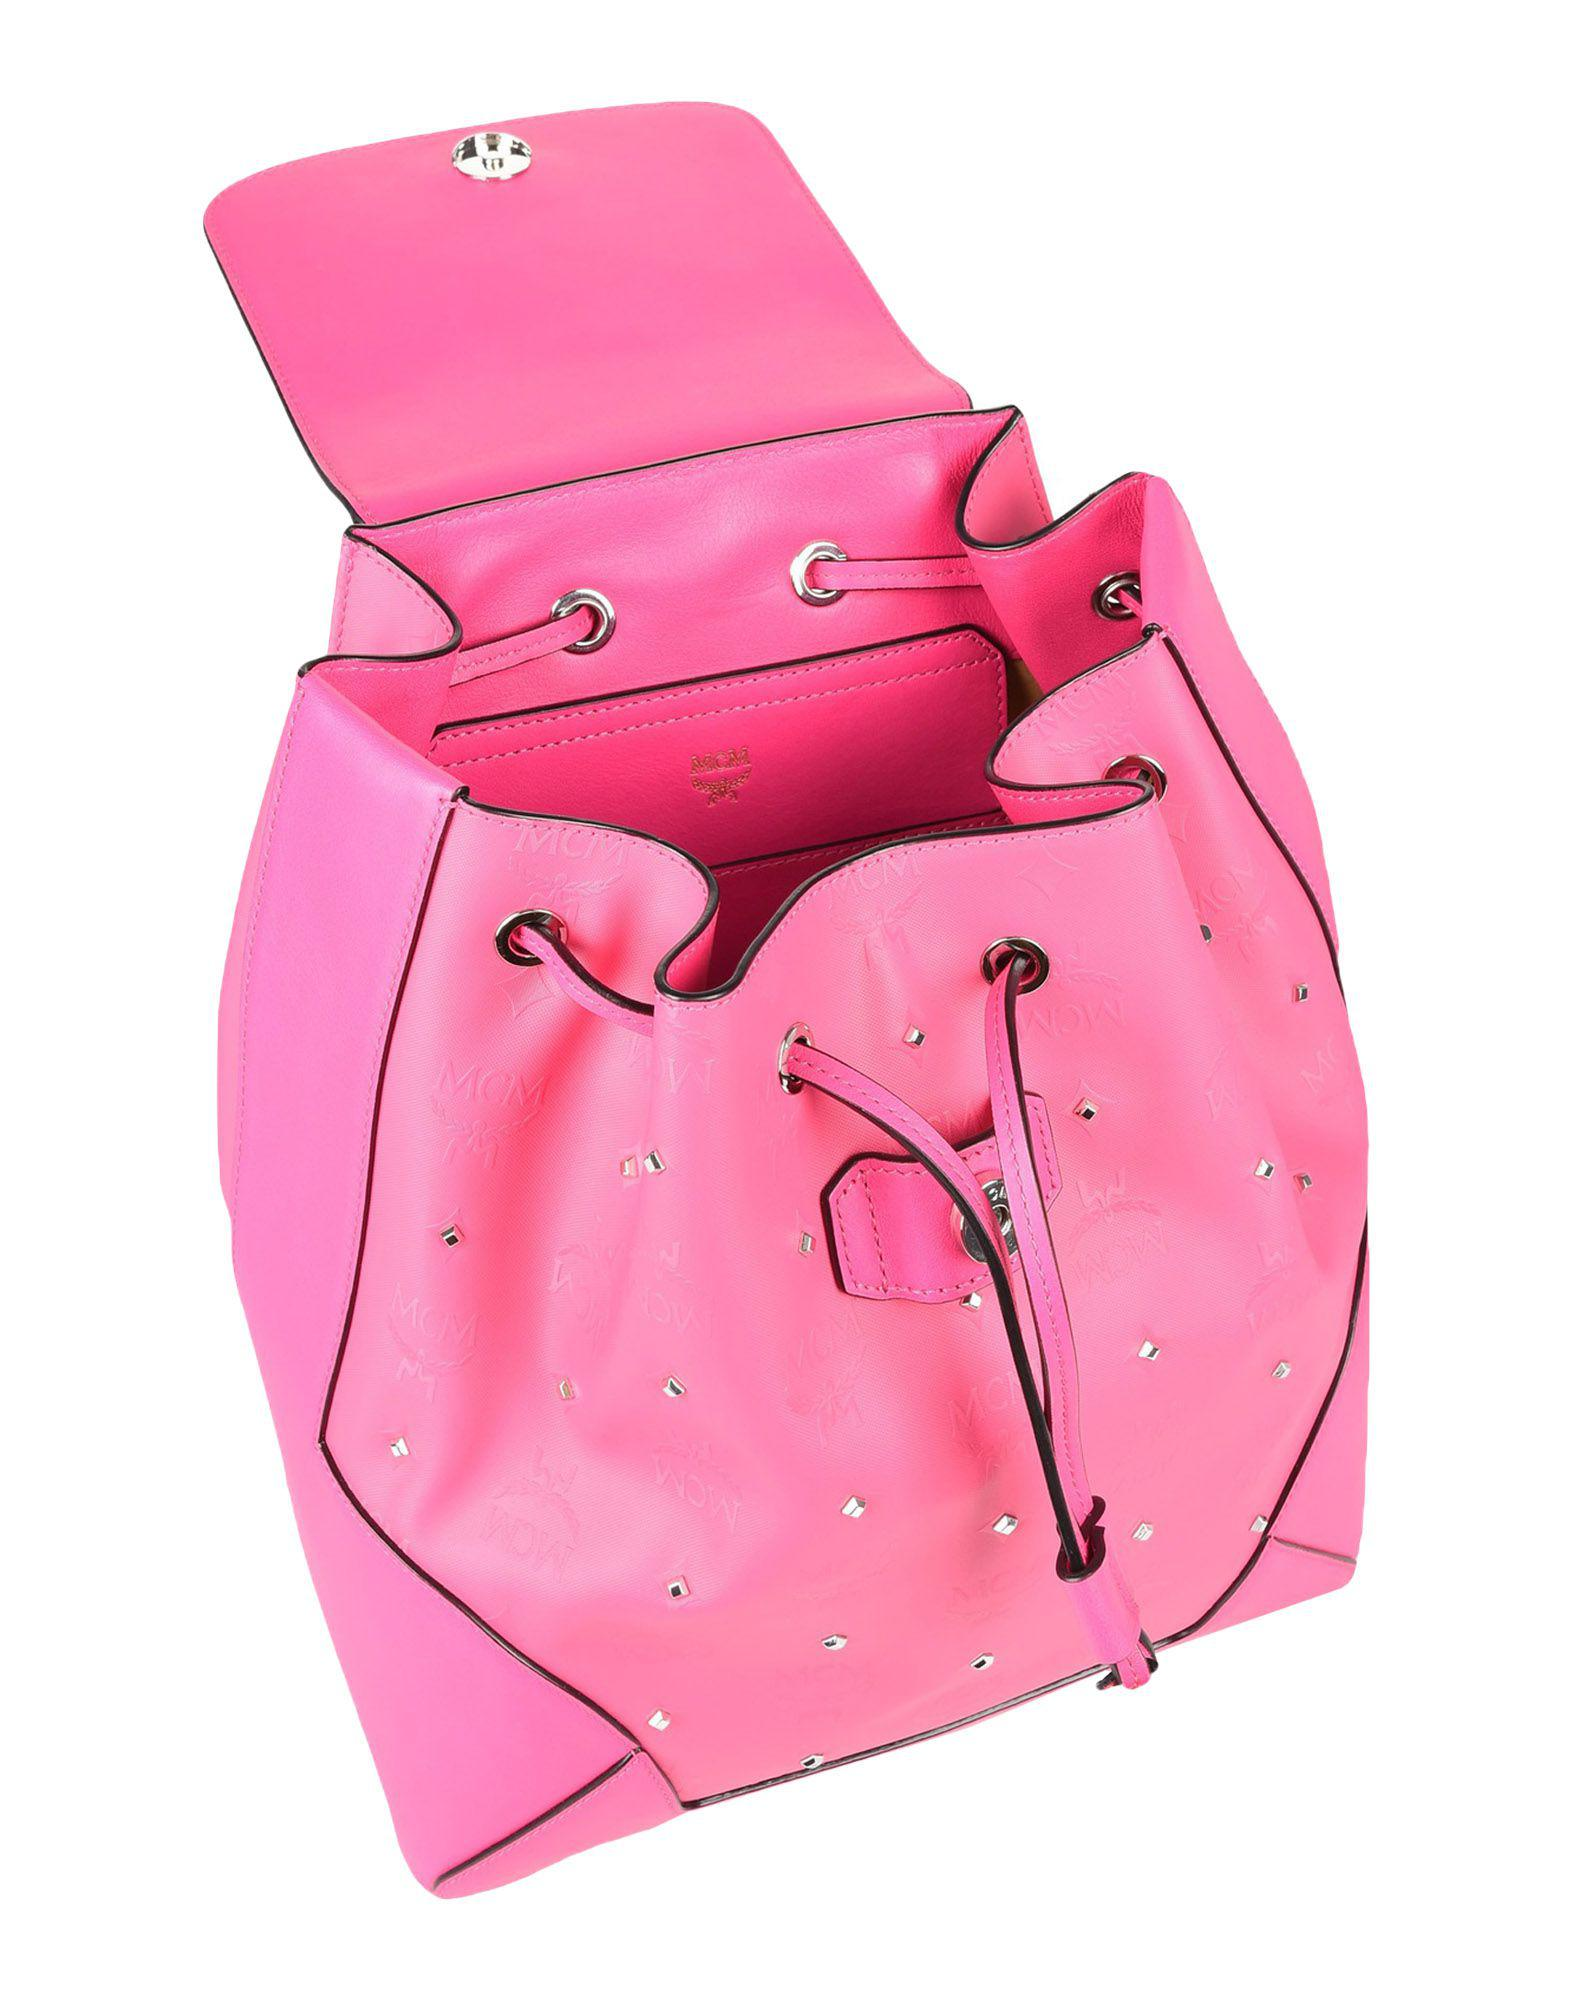 MCM Backpacks & Fanny Packs in Fuchsia (Pink)